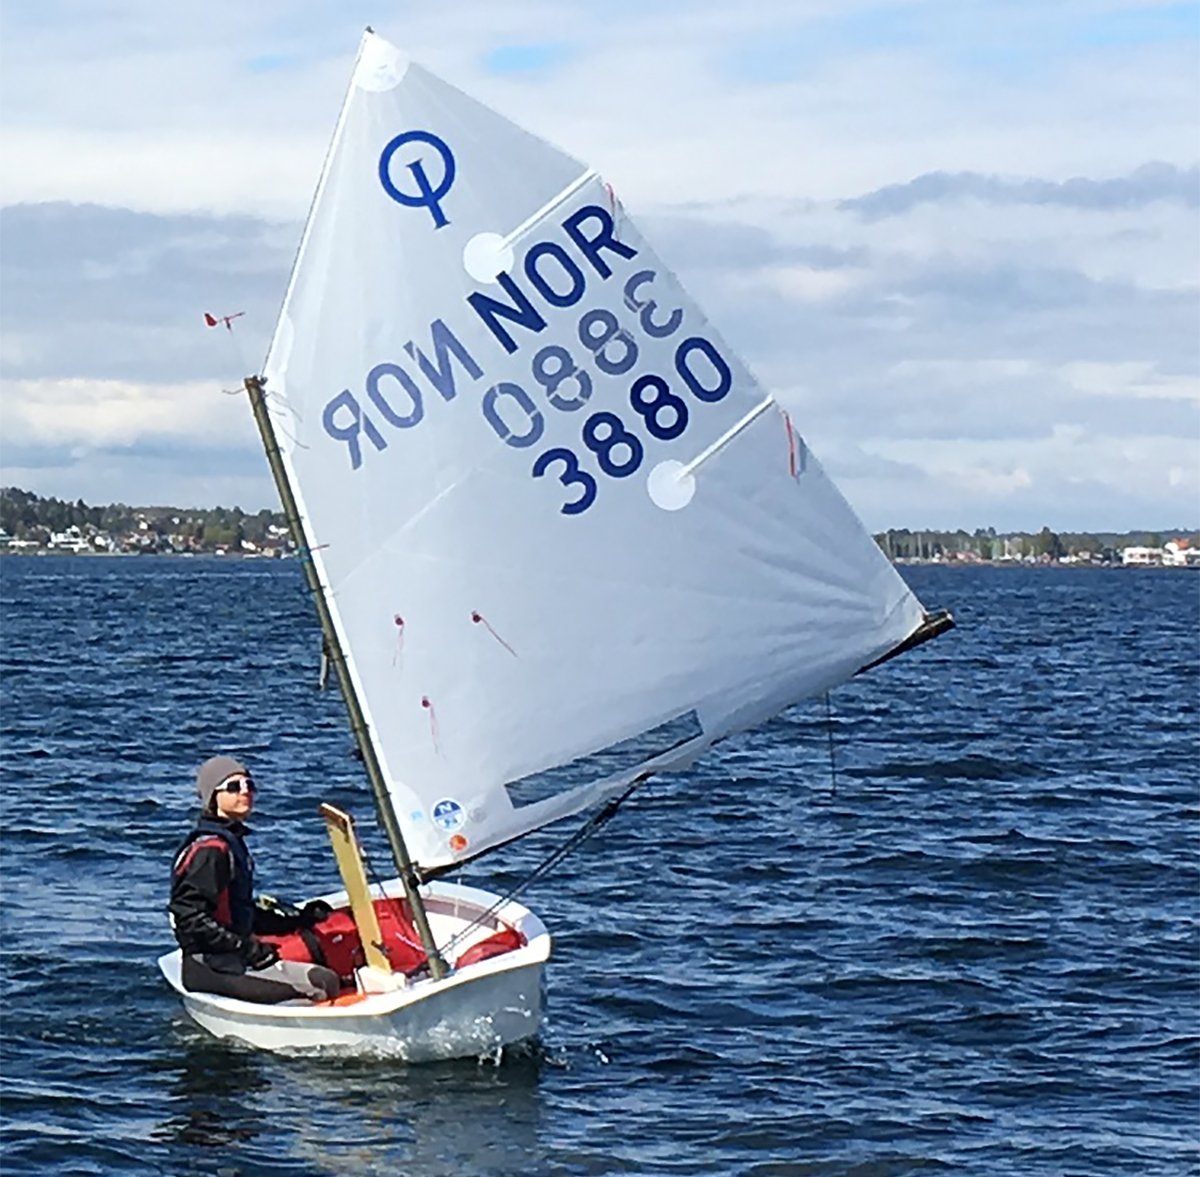 John Yvind Garvik Wins First Event Of Optimist Norwegian